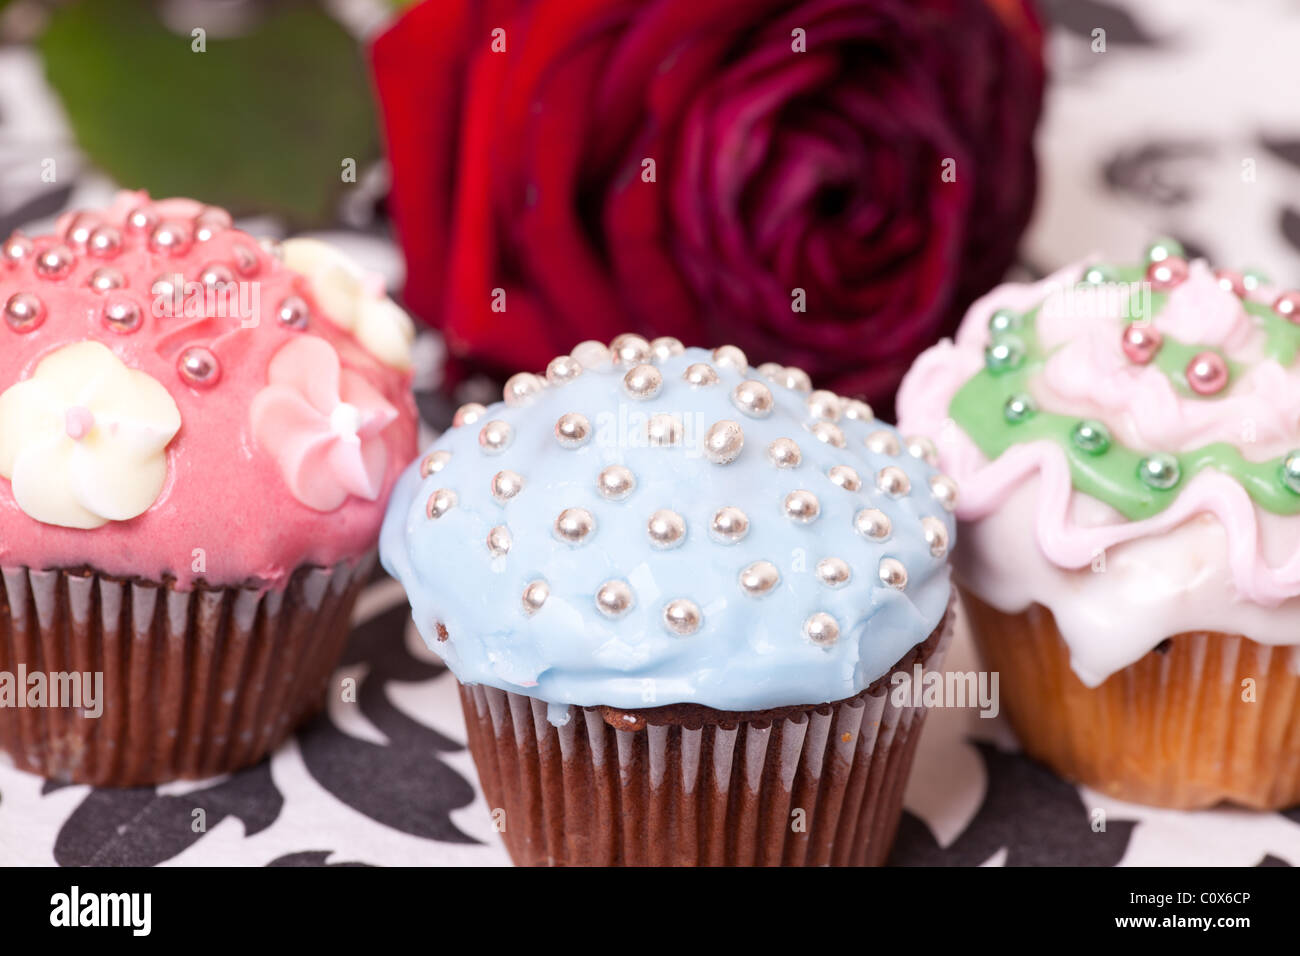 macro picture of multi colored cup cakes on the background with the red rose. - Stock Image